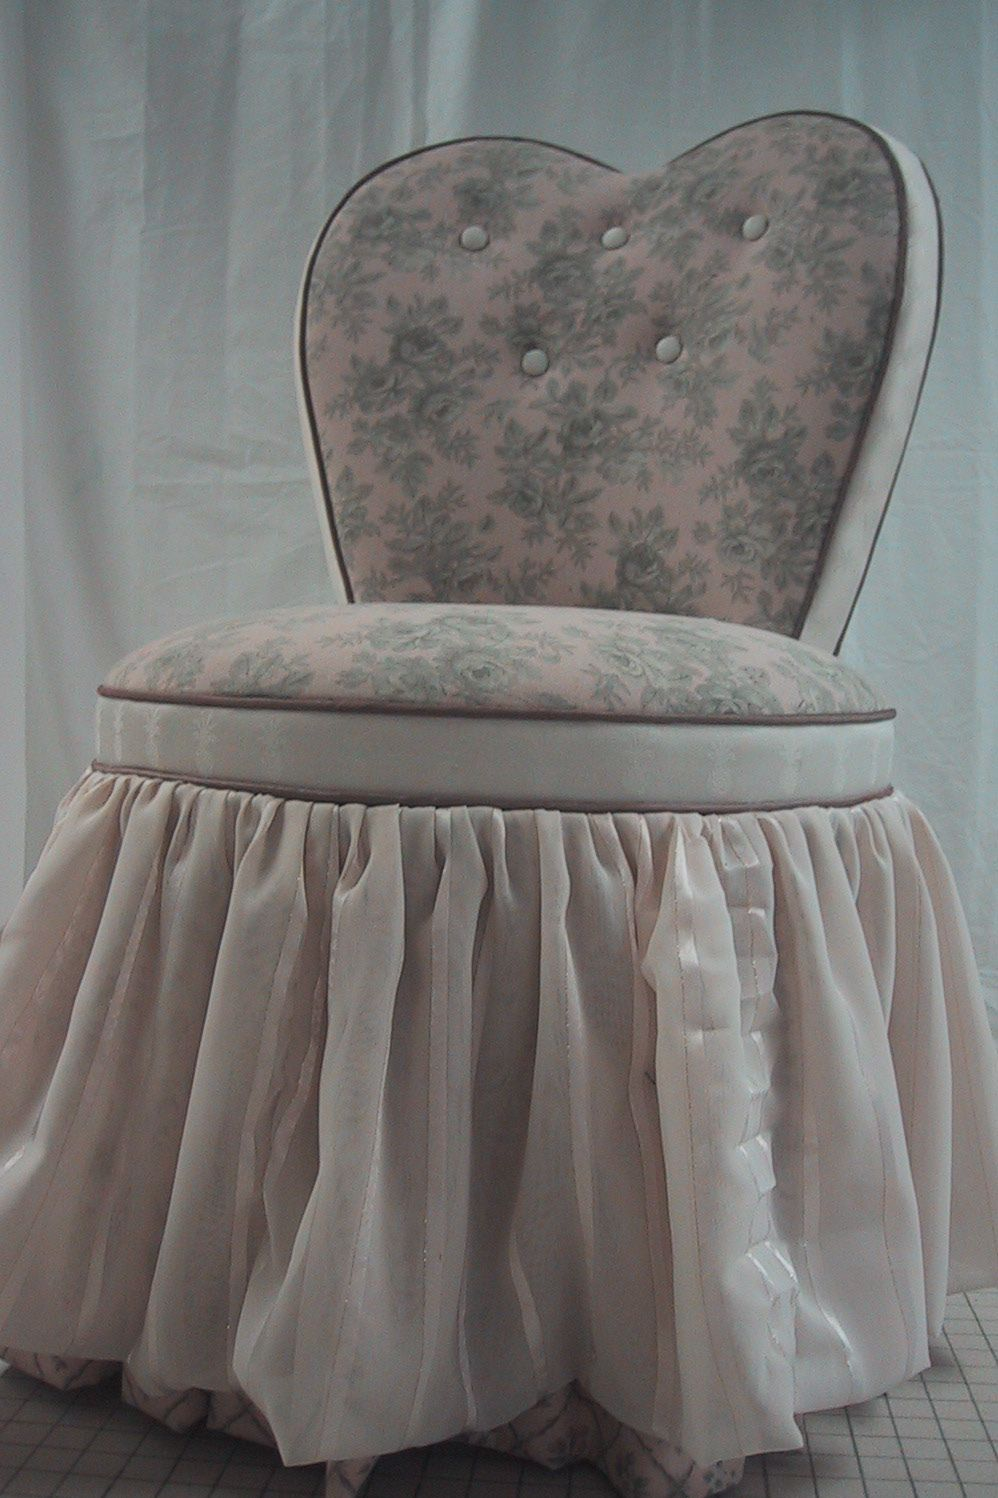 Vintage Skirted Vanity Below Is The Before Photo Of The Adorable